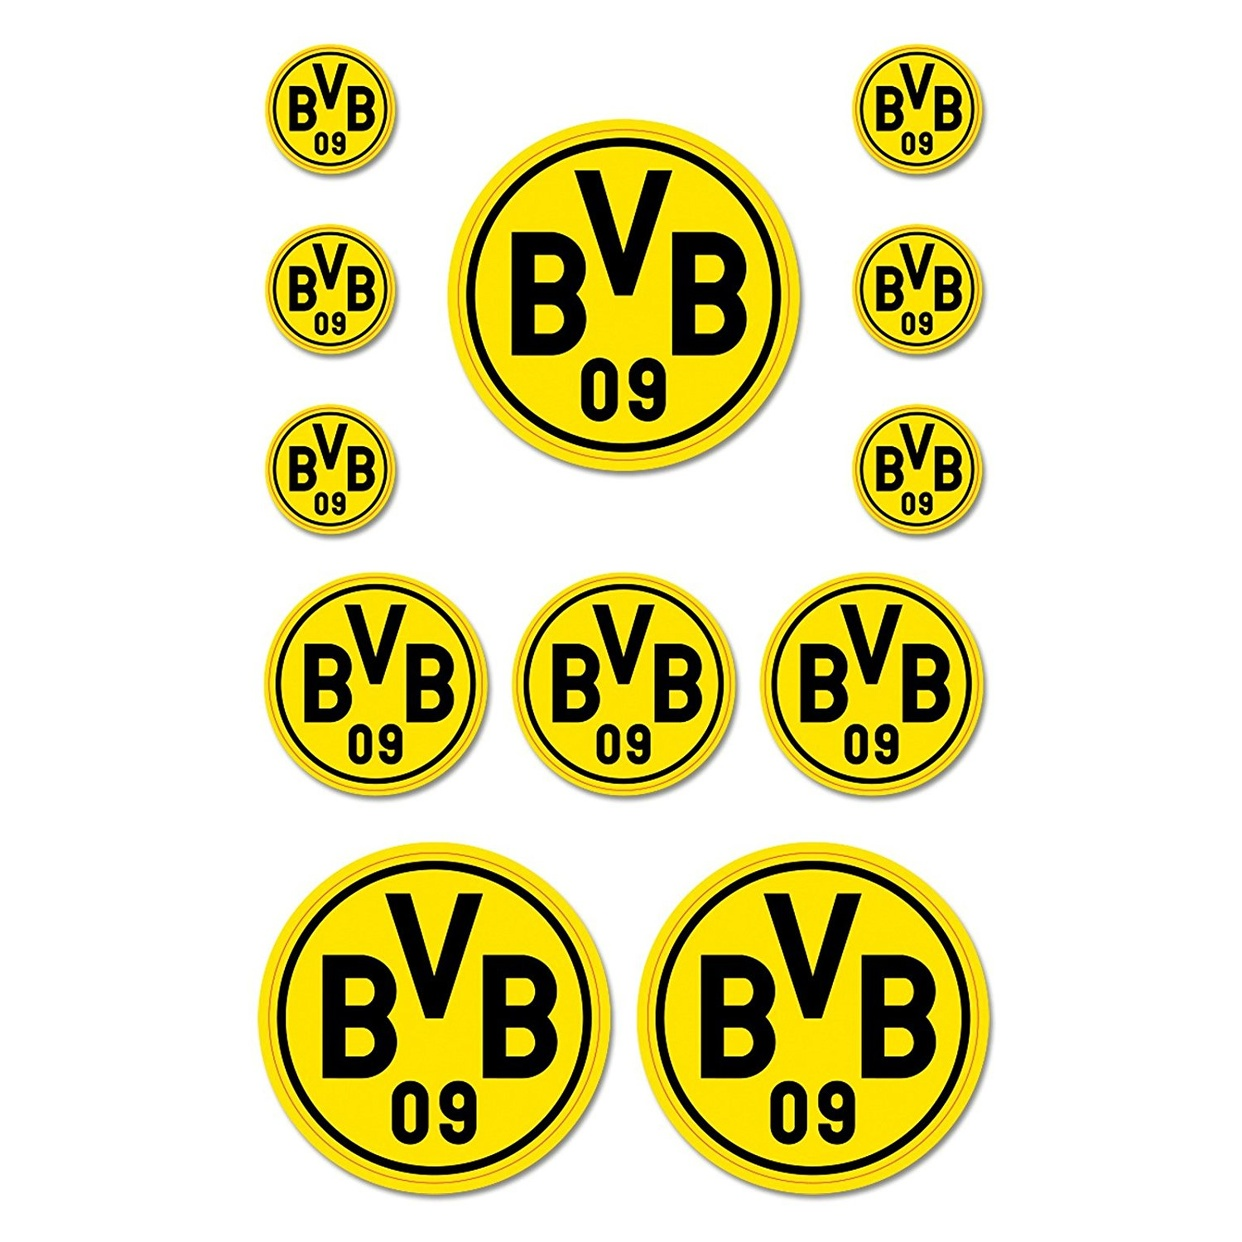 bvb aufkleberkarte borussia dortmund ebay. Black Bedroom Furniture Sets. Home Design Ideas